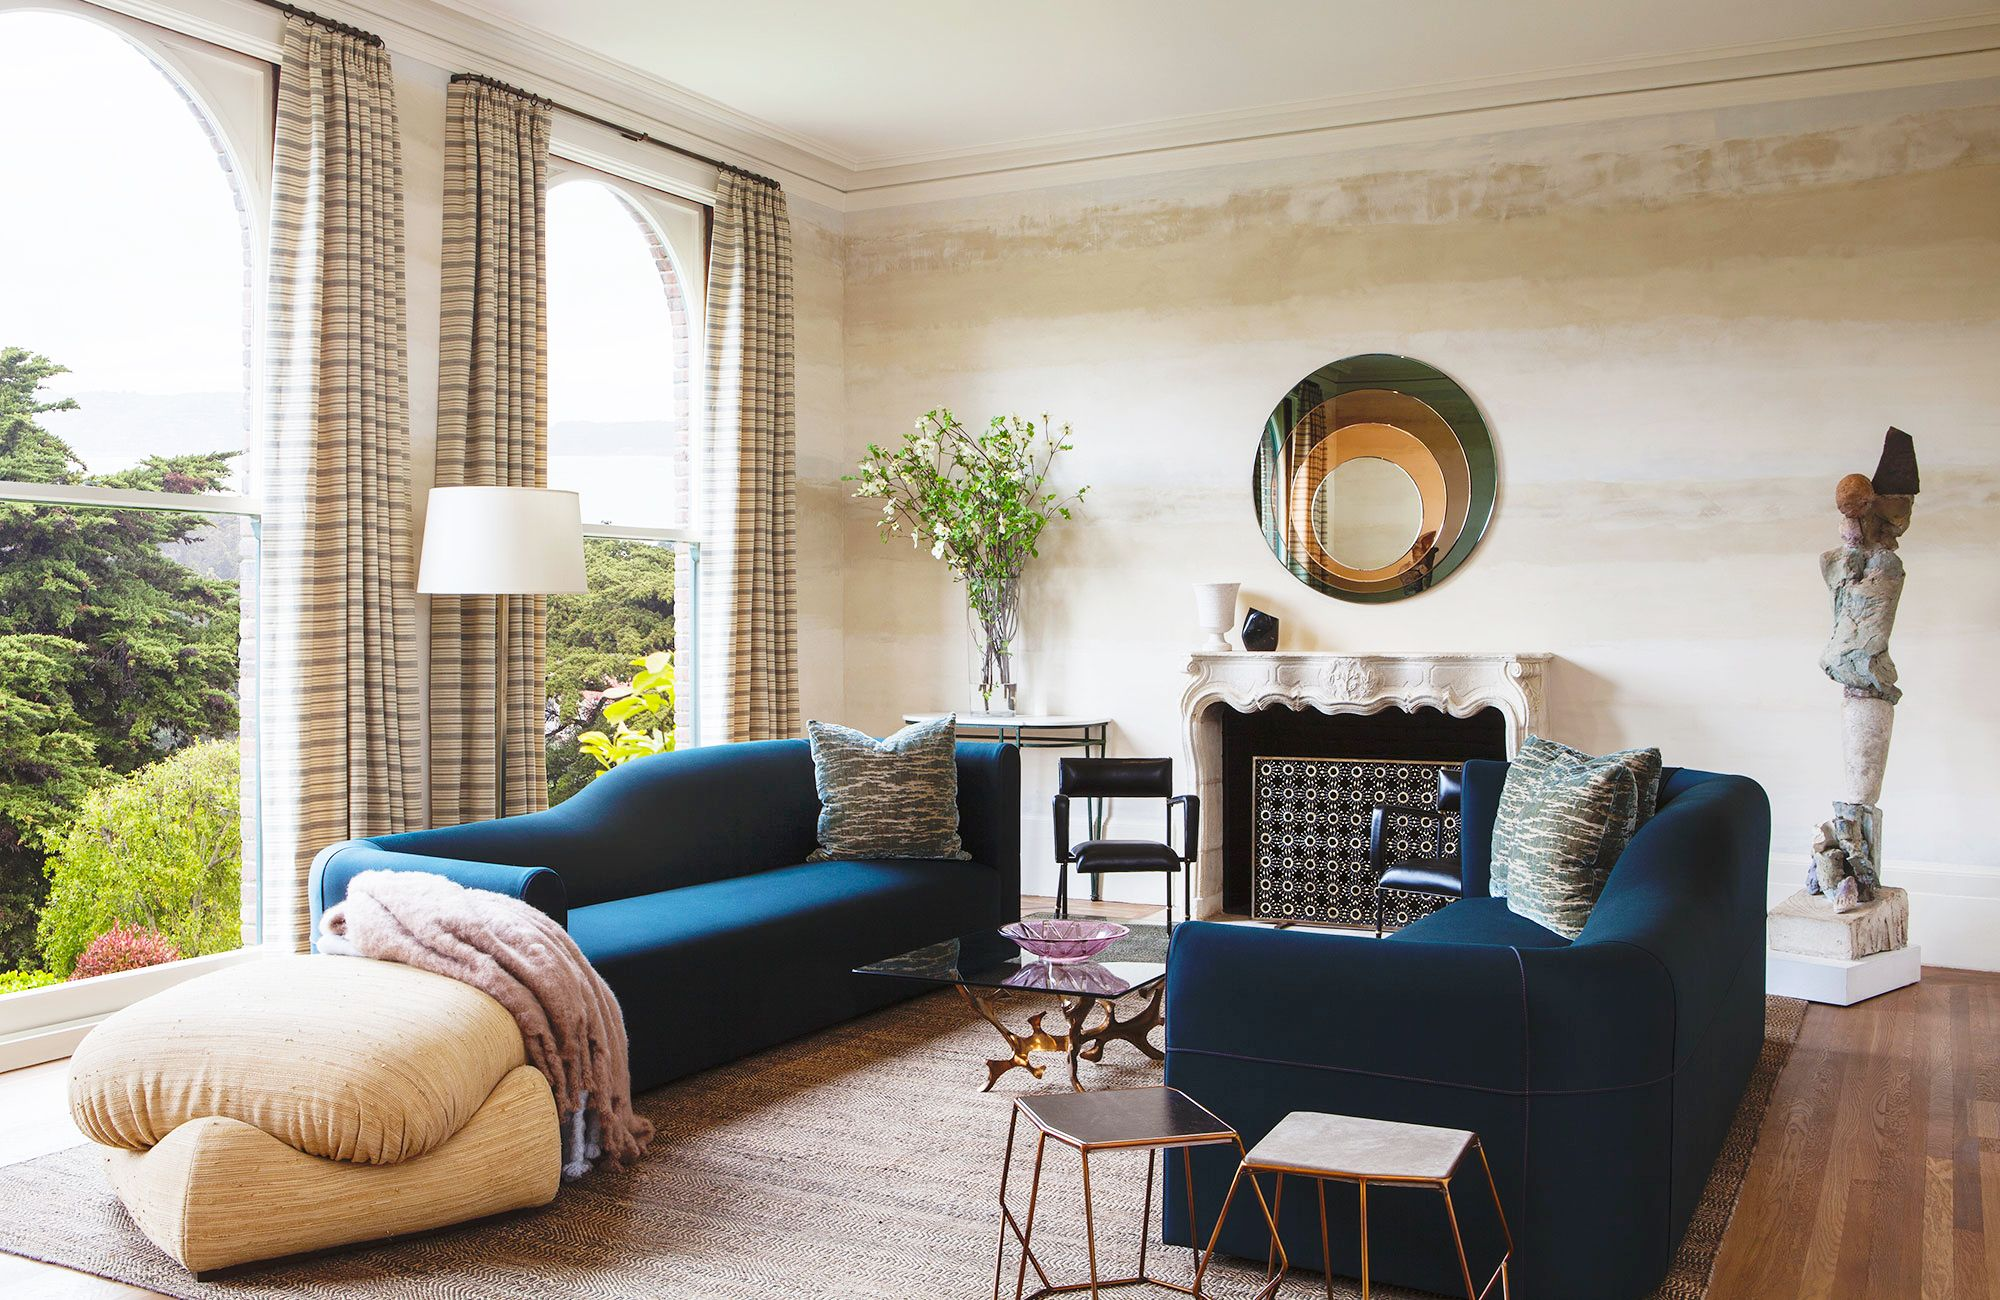 Interior Designing – Things you Should Know About Decorating Home